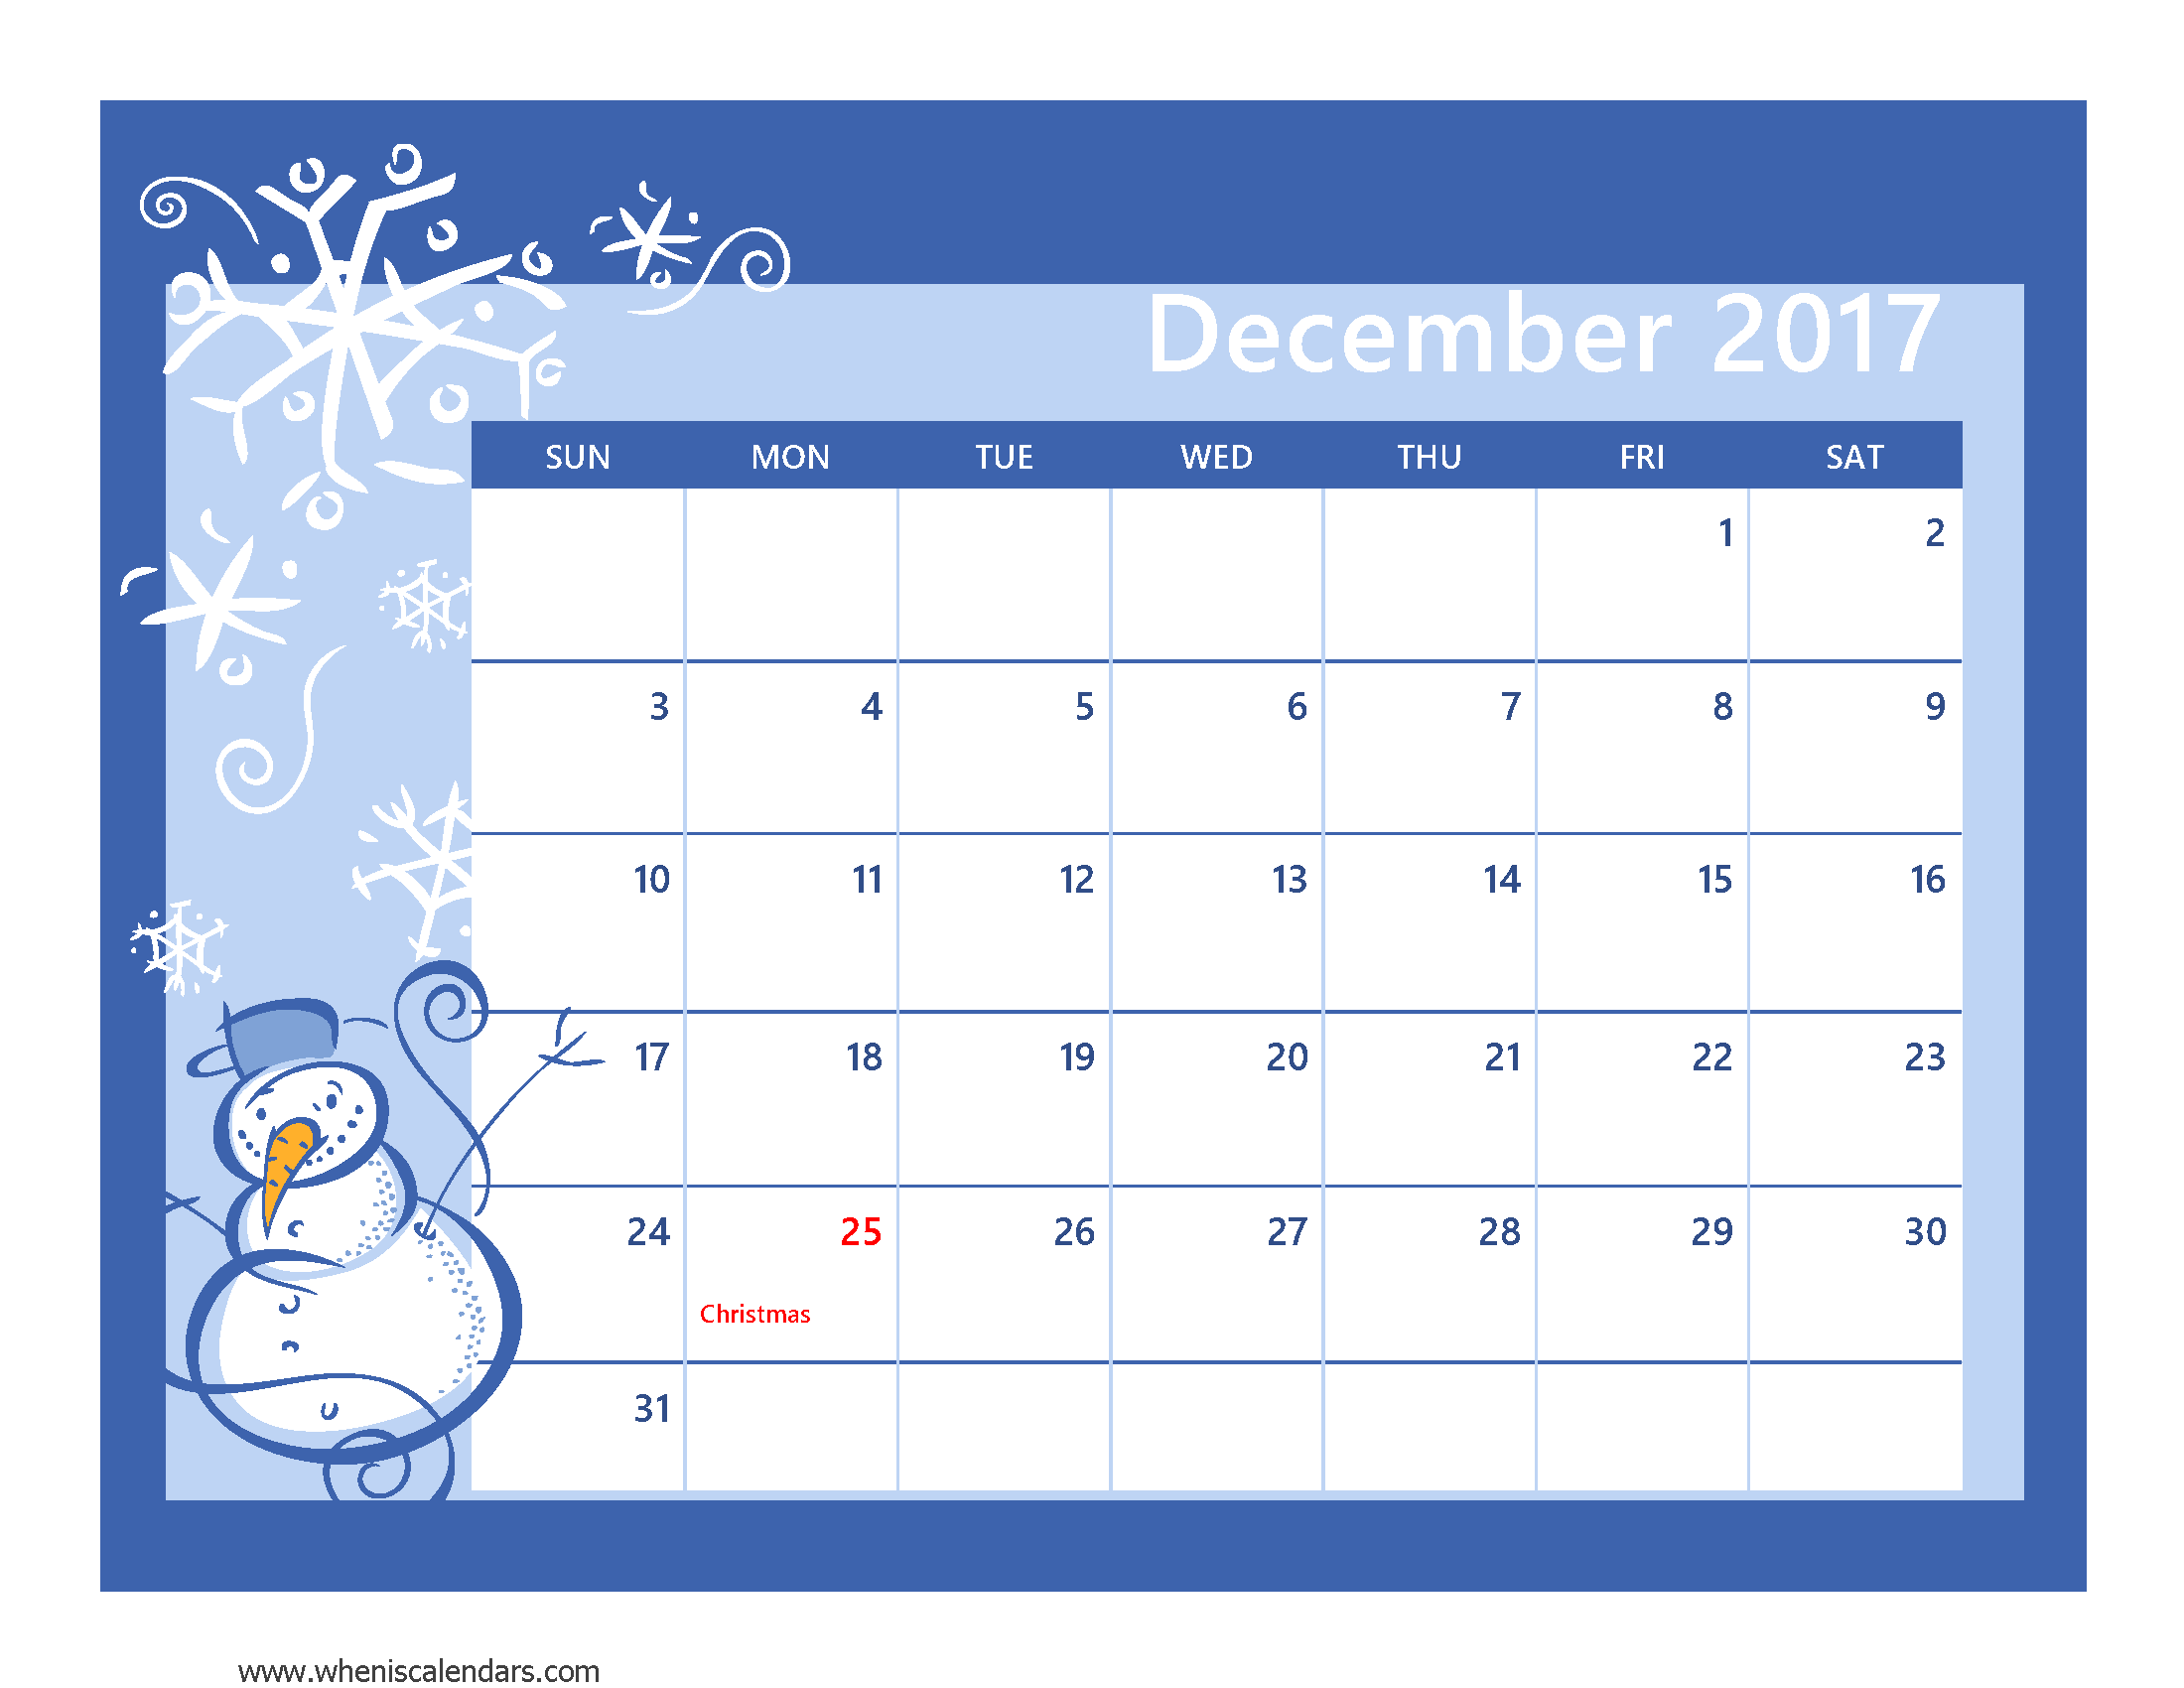 December 2017 Calendar Printable With Holidays December 2017